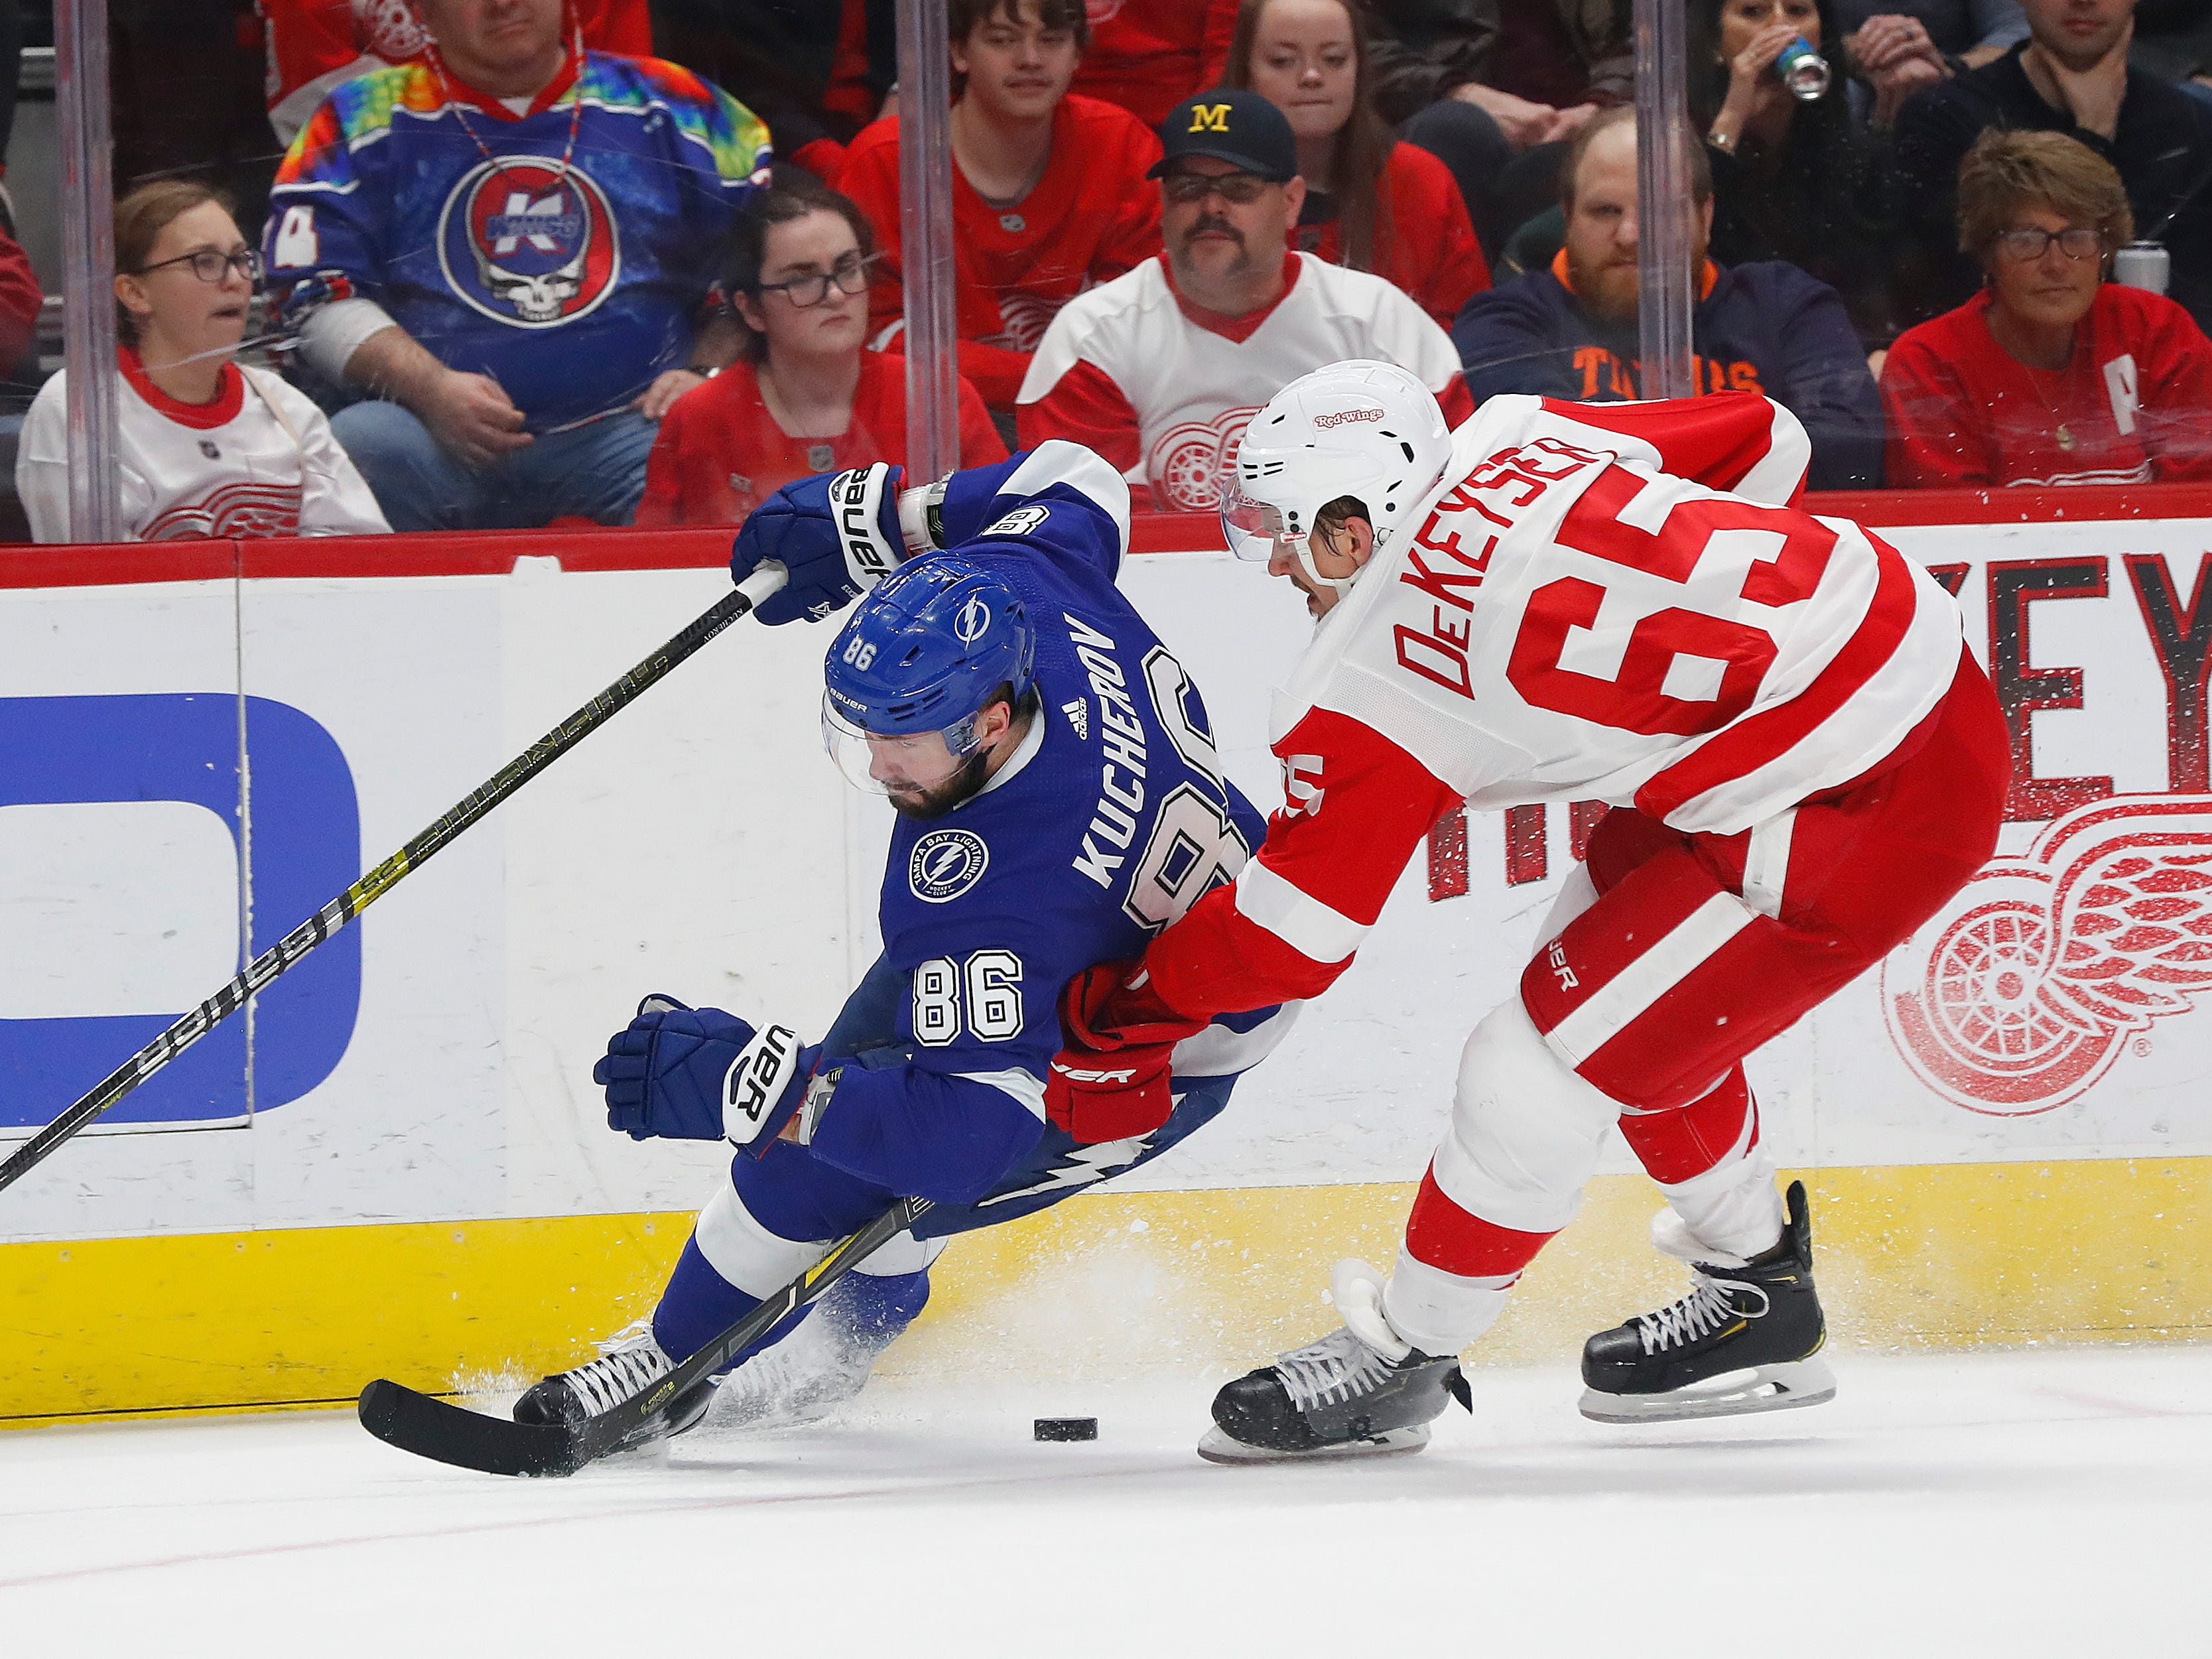 Detroit Red Wings defenseman Danny DeKeyser (65) knocks Tampa Bay Lightning right wing Nikita Kucherov (86) off the puck in the first period.